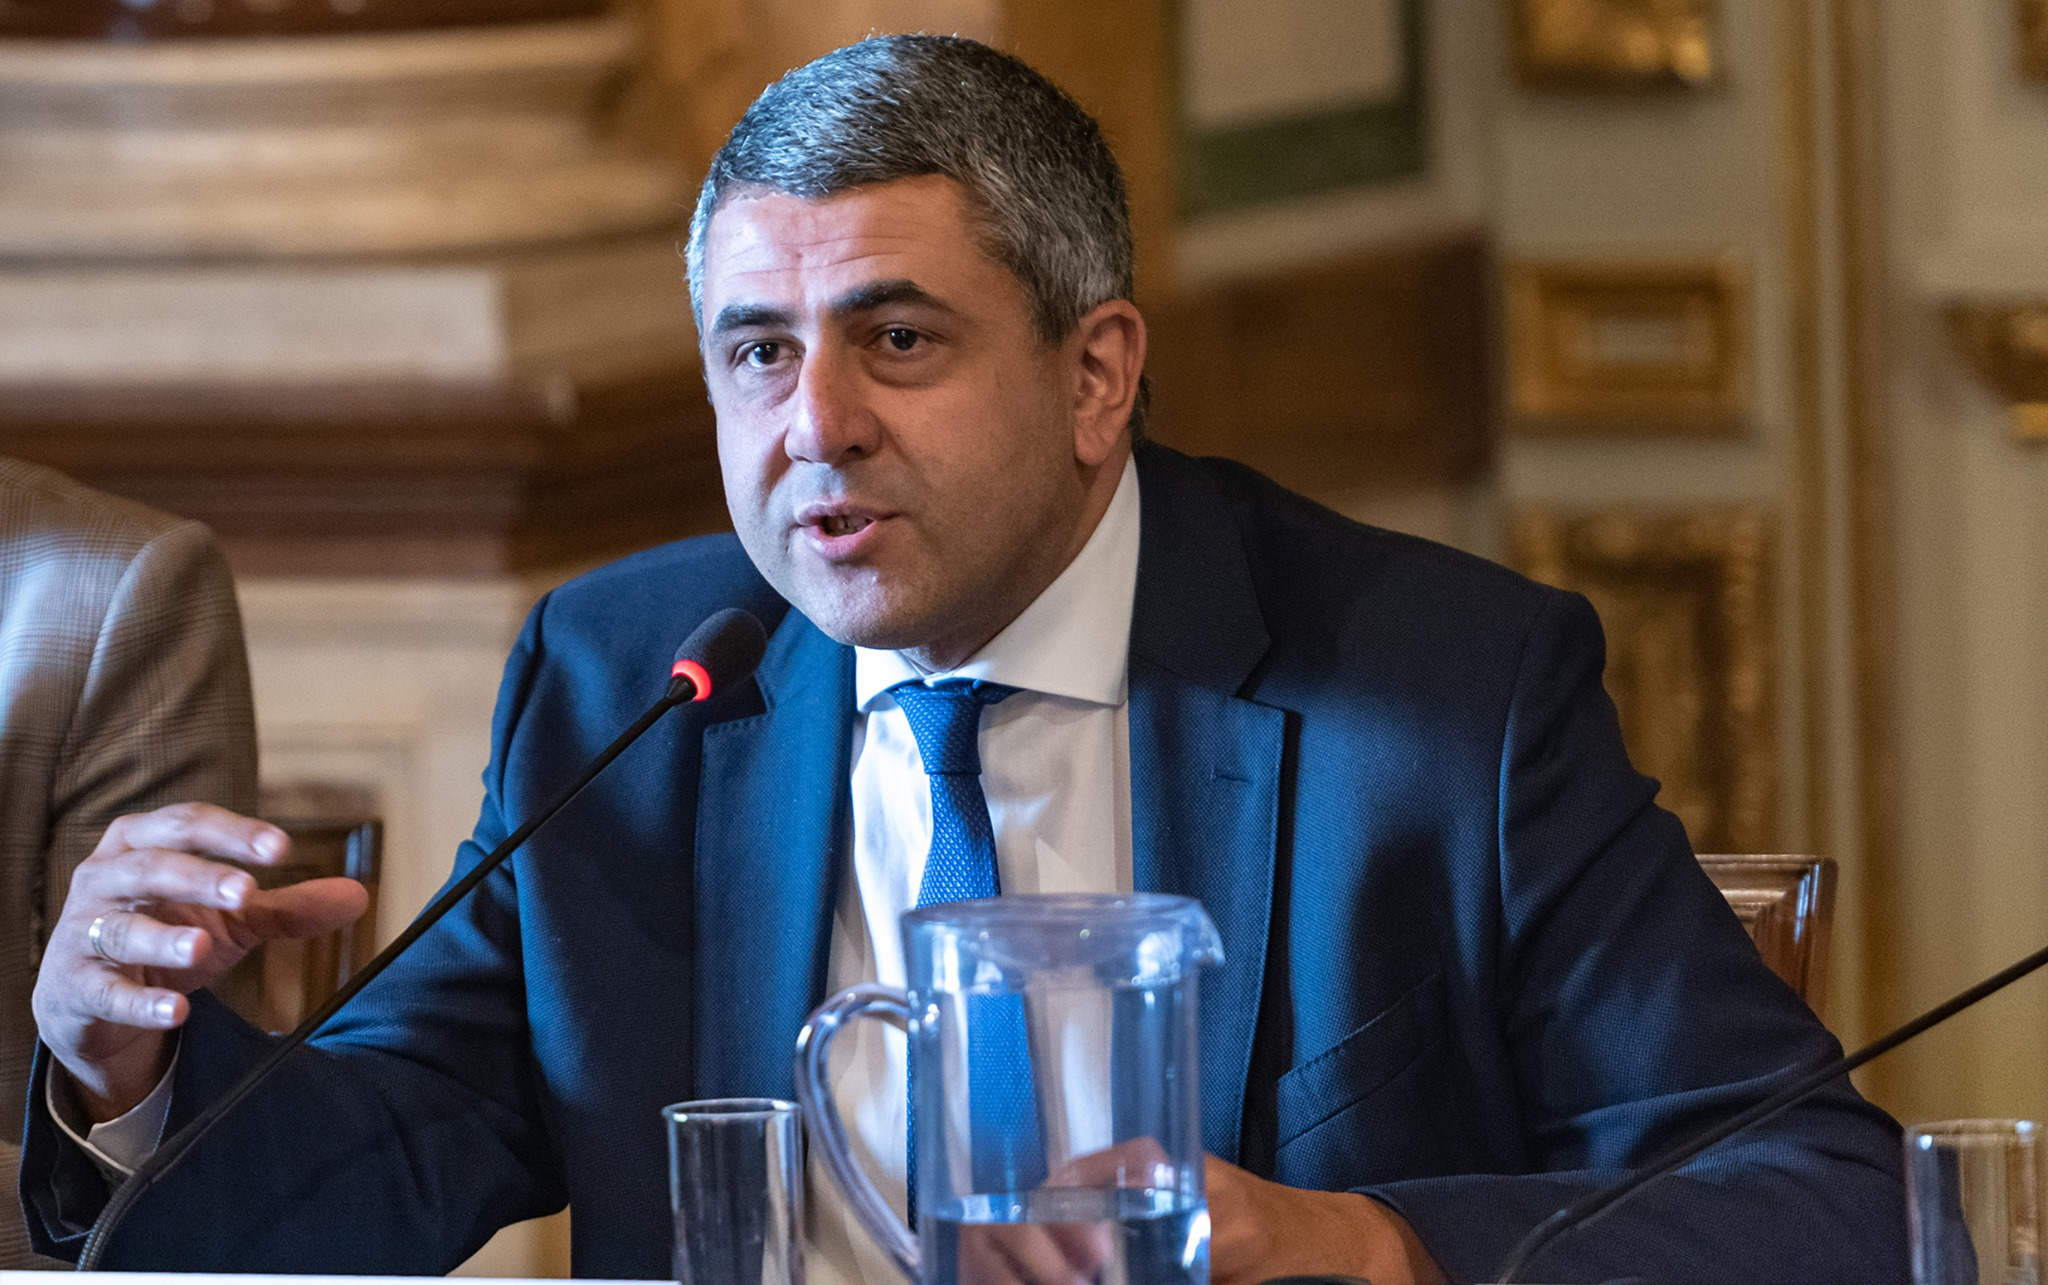 UNWTO Secretary-General to Present Platino Award for Cinema and Education